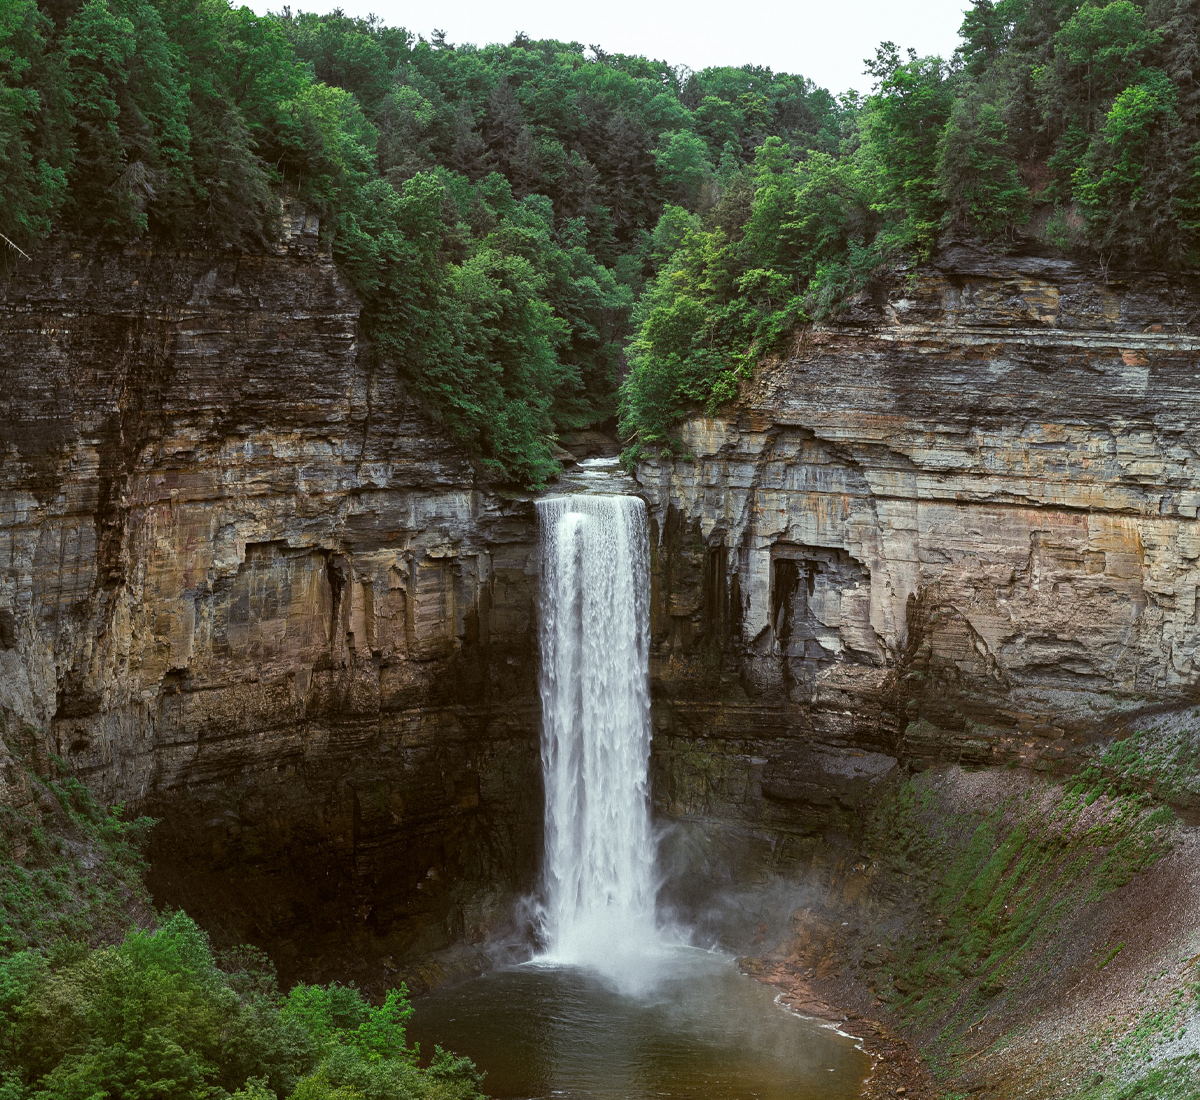 A large waterfall in a valley surrounded by trees.